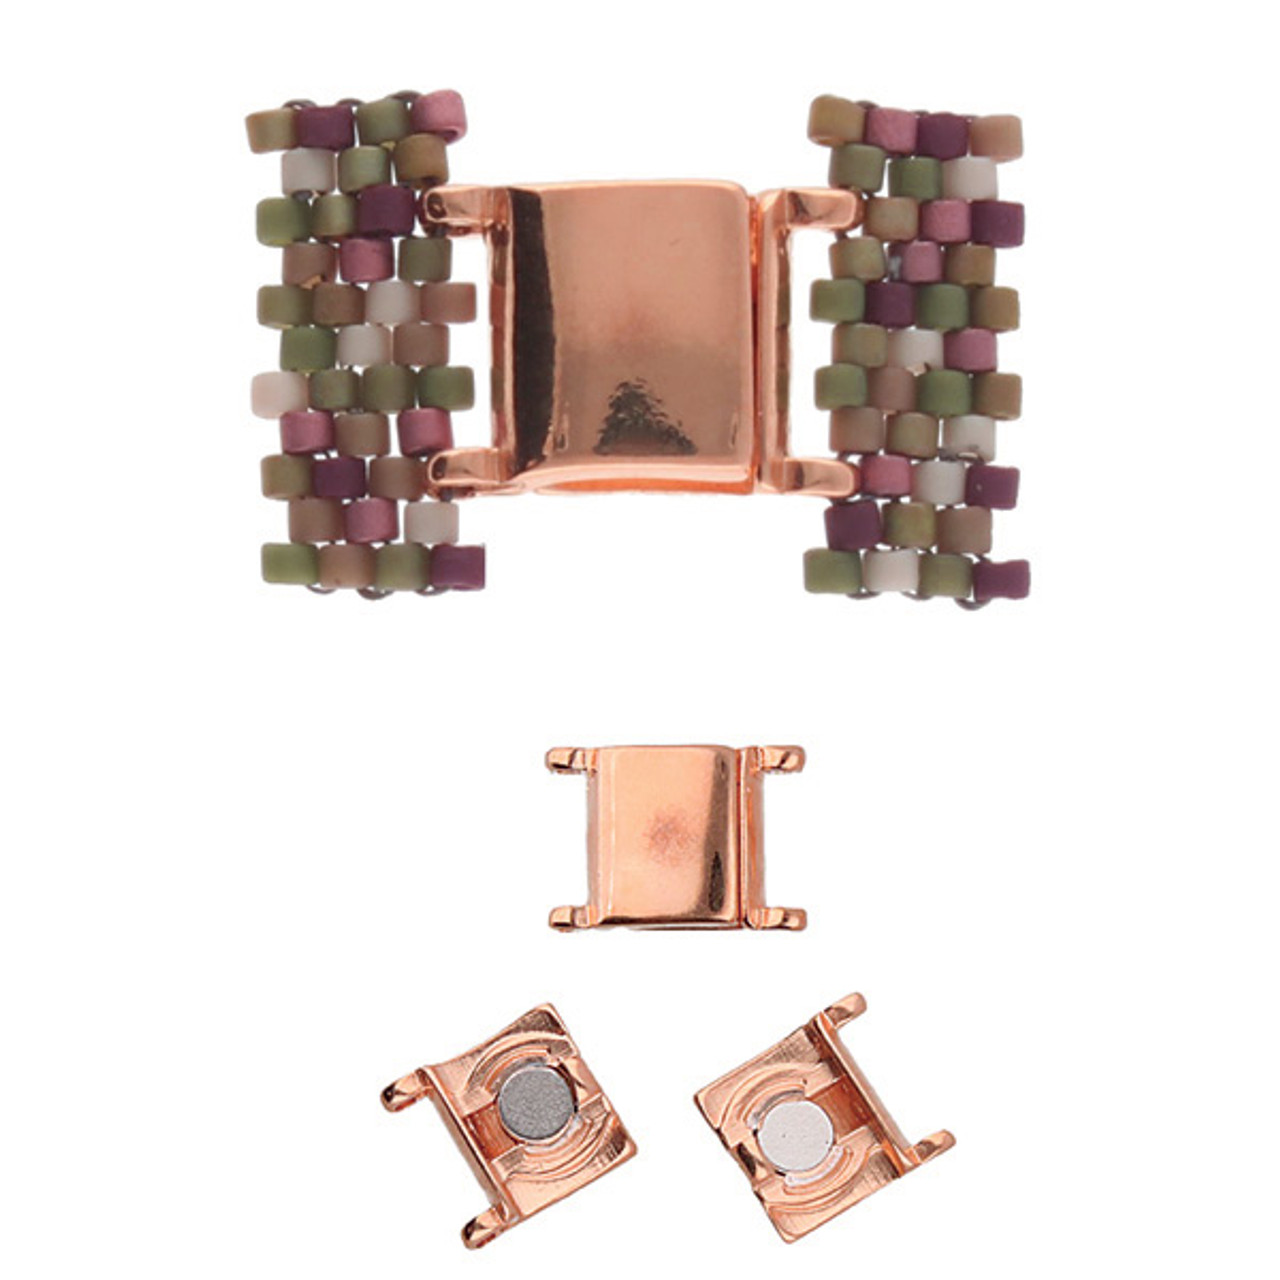 Axos II Delica Magnetic Clasp Rose Gold (1 Clasp)